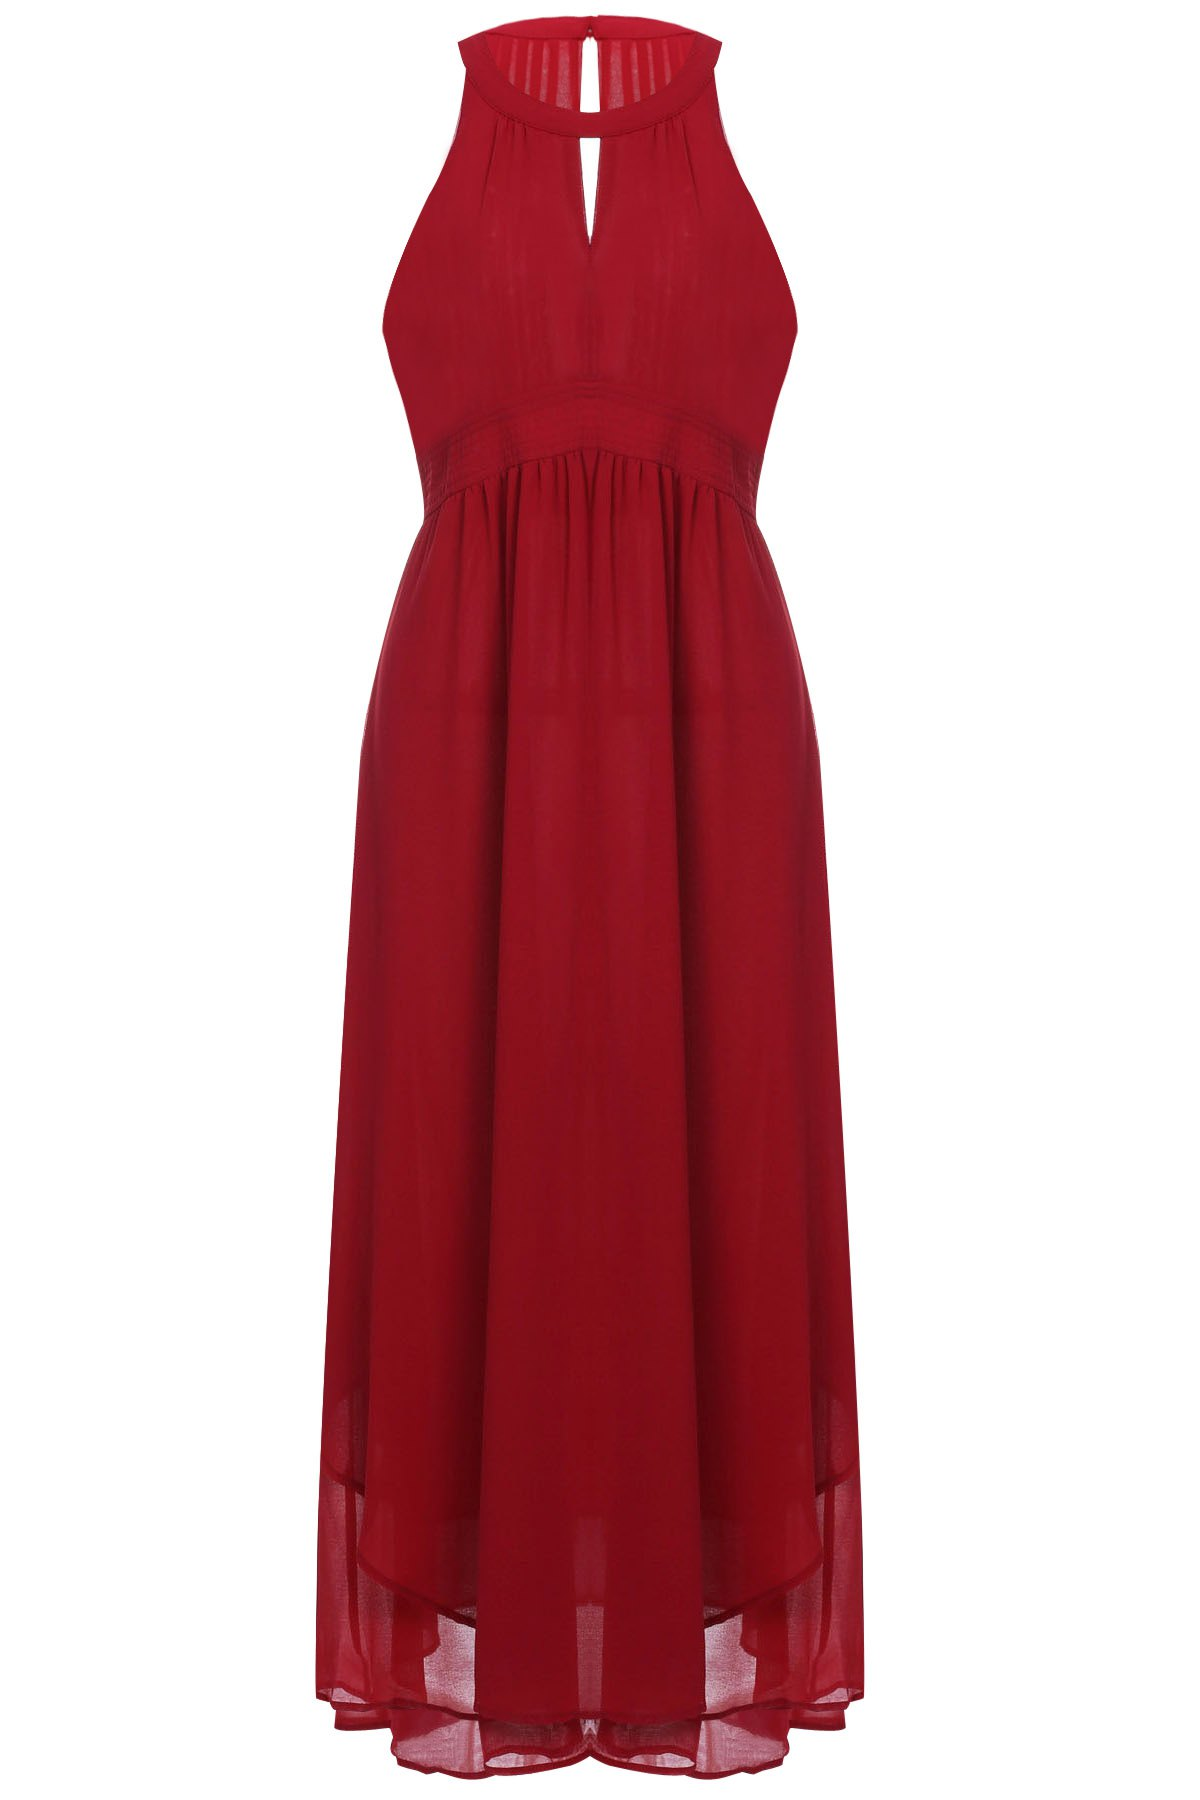 Charming Solid Color Hollow Out Sleeveless Chiffon Maxi Dress For Women